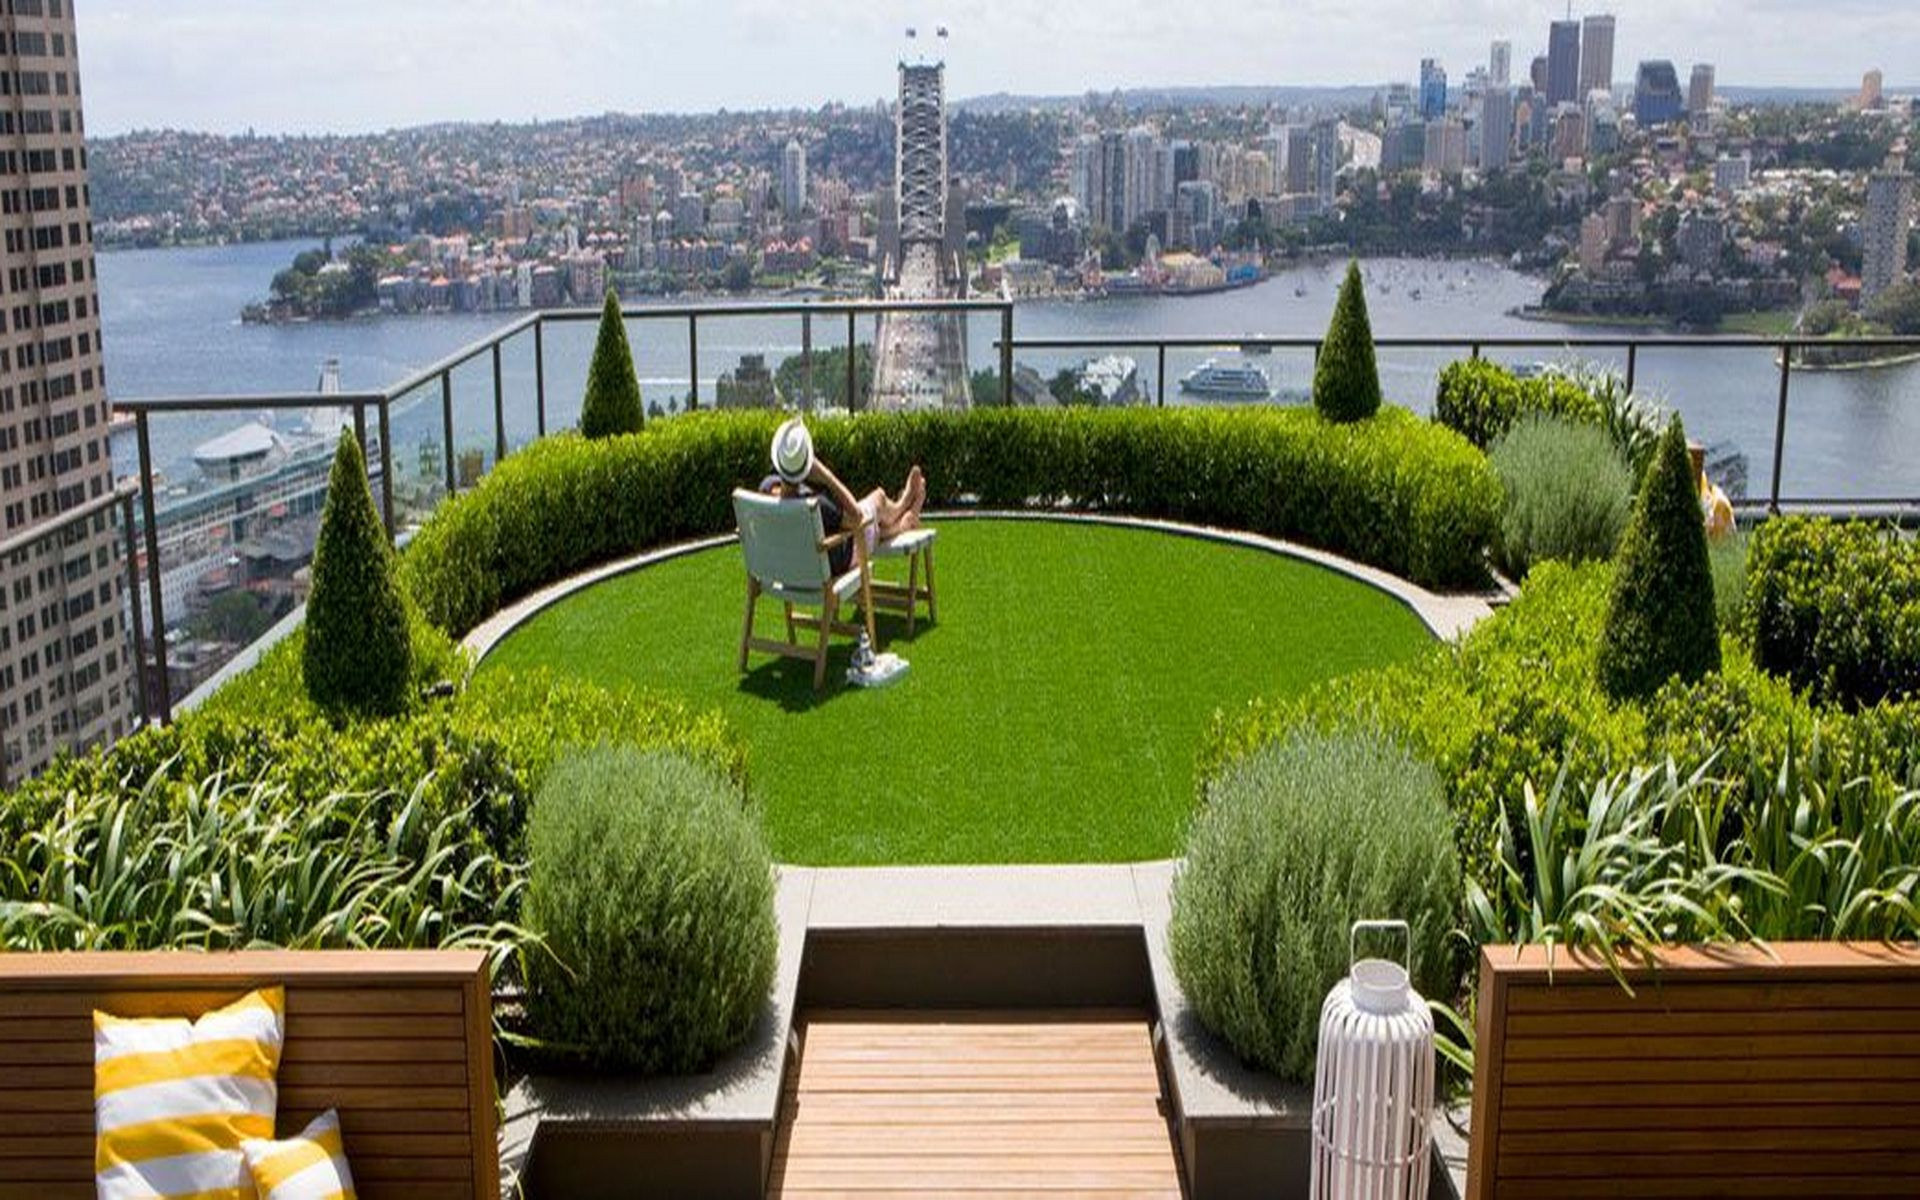 Slope garden ideas city landscape top view from rooftop for Rooftop landscape design